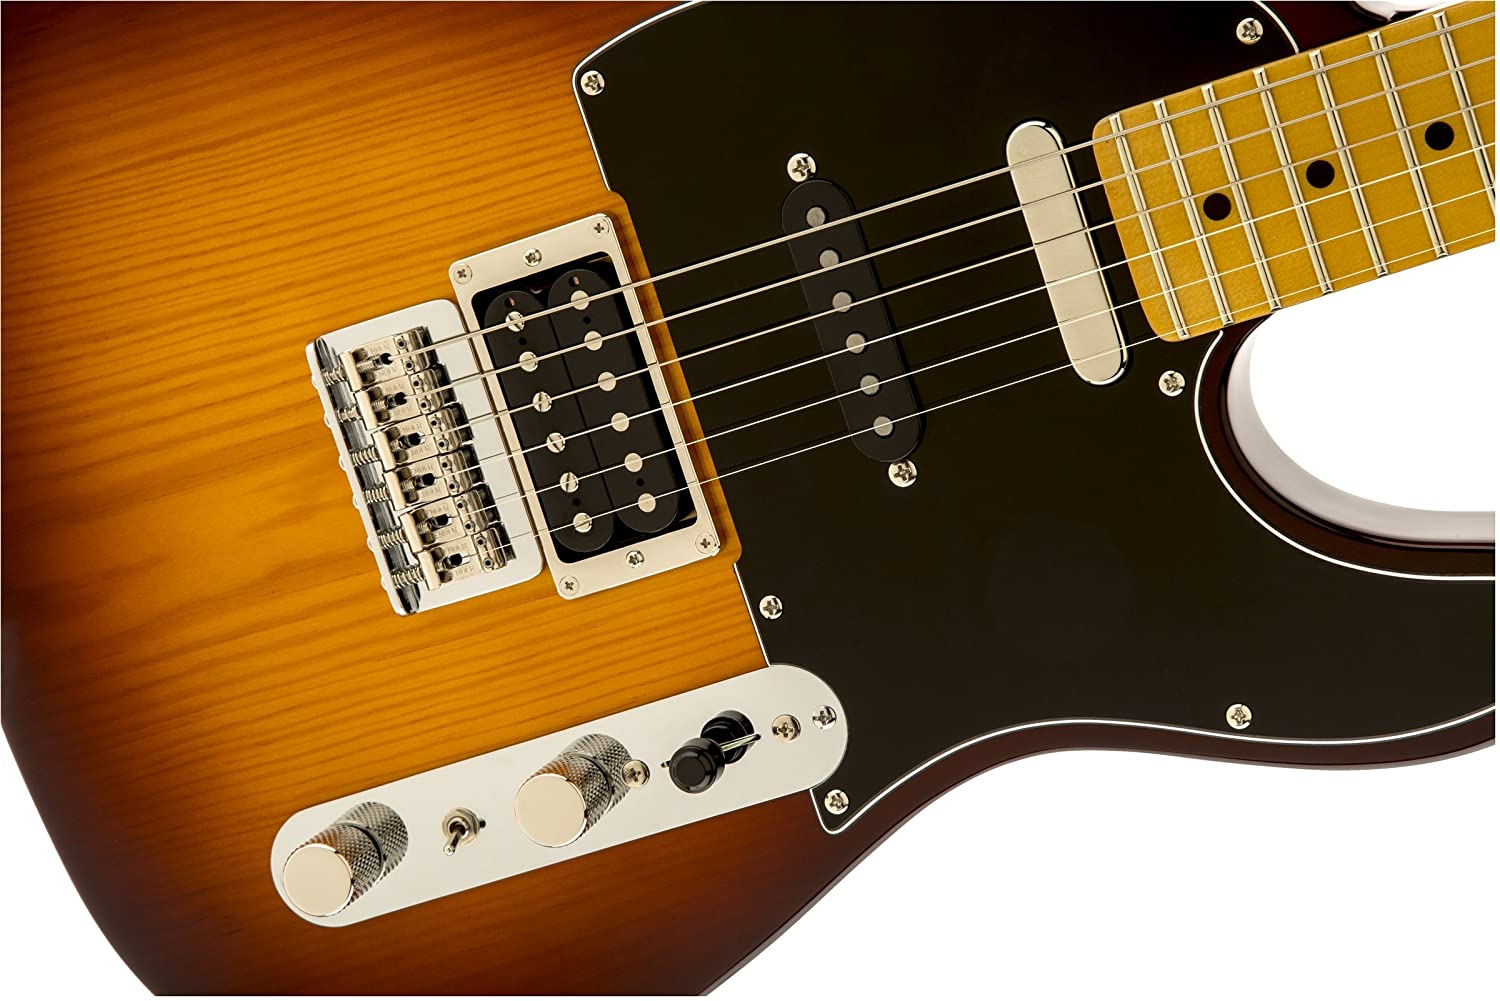 81P7kjj5IbL._SL1500_ amazon com fender modern player tele plus electric guitar, honey fender modern player telecaster wiring diagram at readyjetset.co